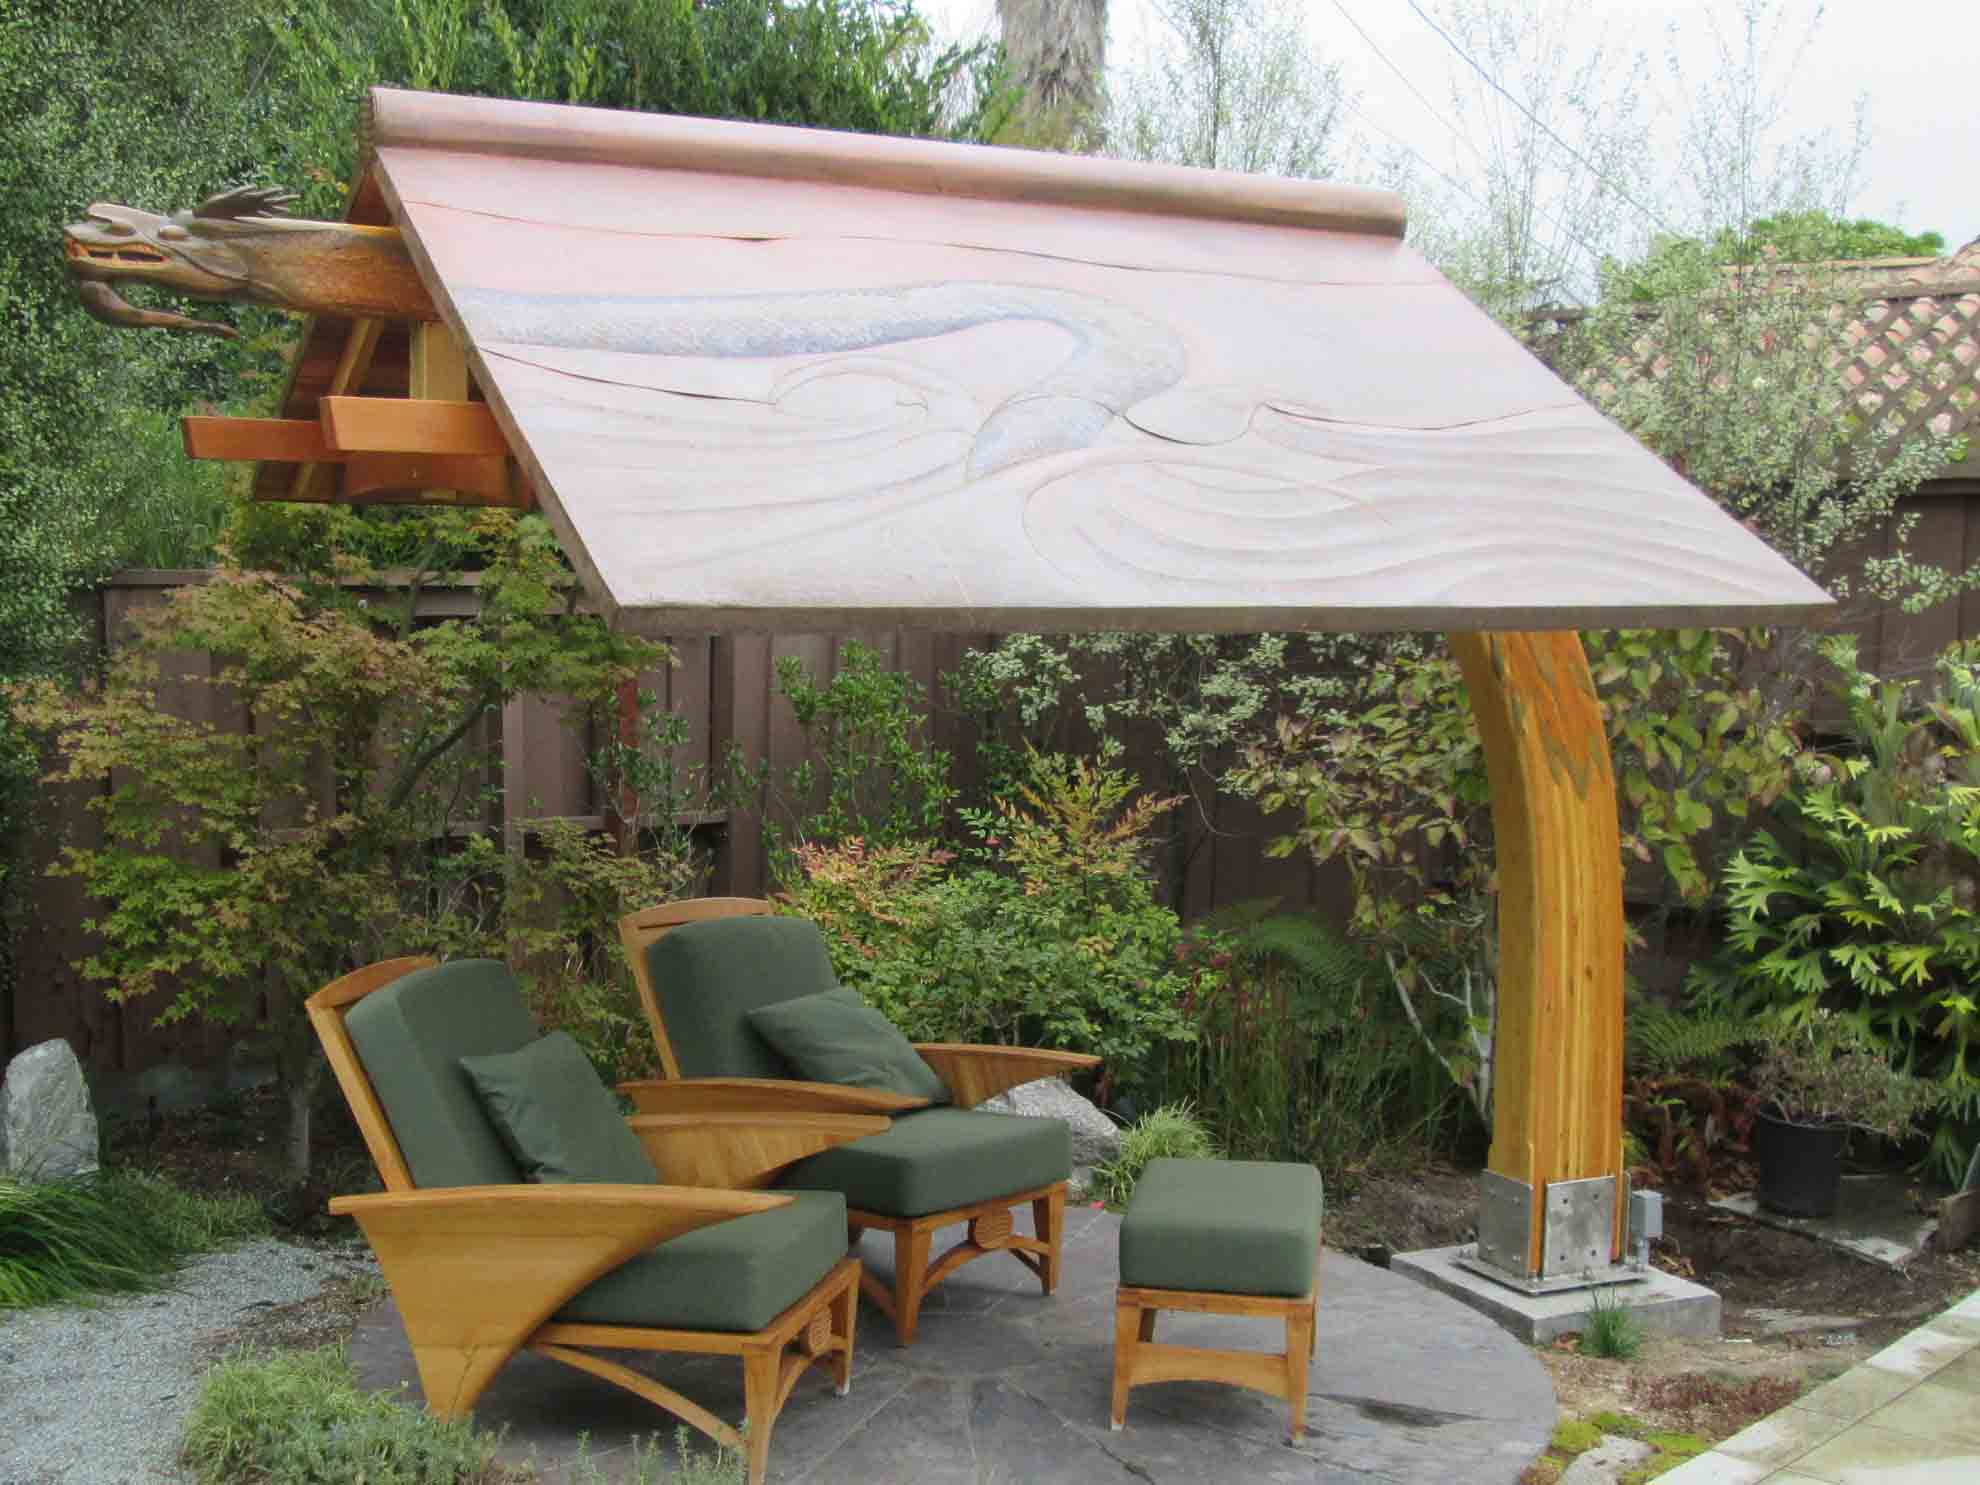 Open Air Tea House  Tapered Bent Laminated Curved Beam, Douglas Fir; hand carved with 3,000 scales + Water Dragon Head.   Canopy, Hammered and shaped Copper by Jason Barr and me  Furniture: Plantation Teak, Port Orford Cedar